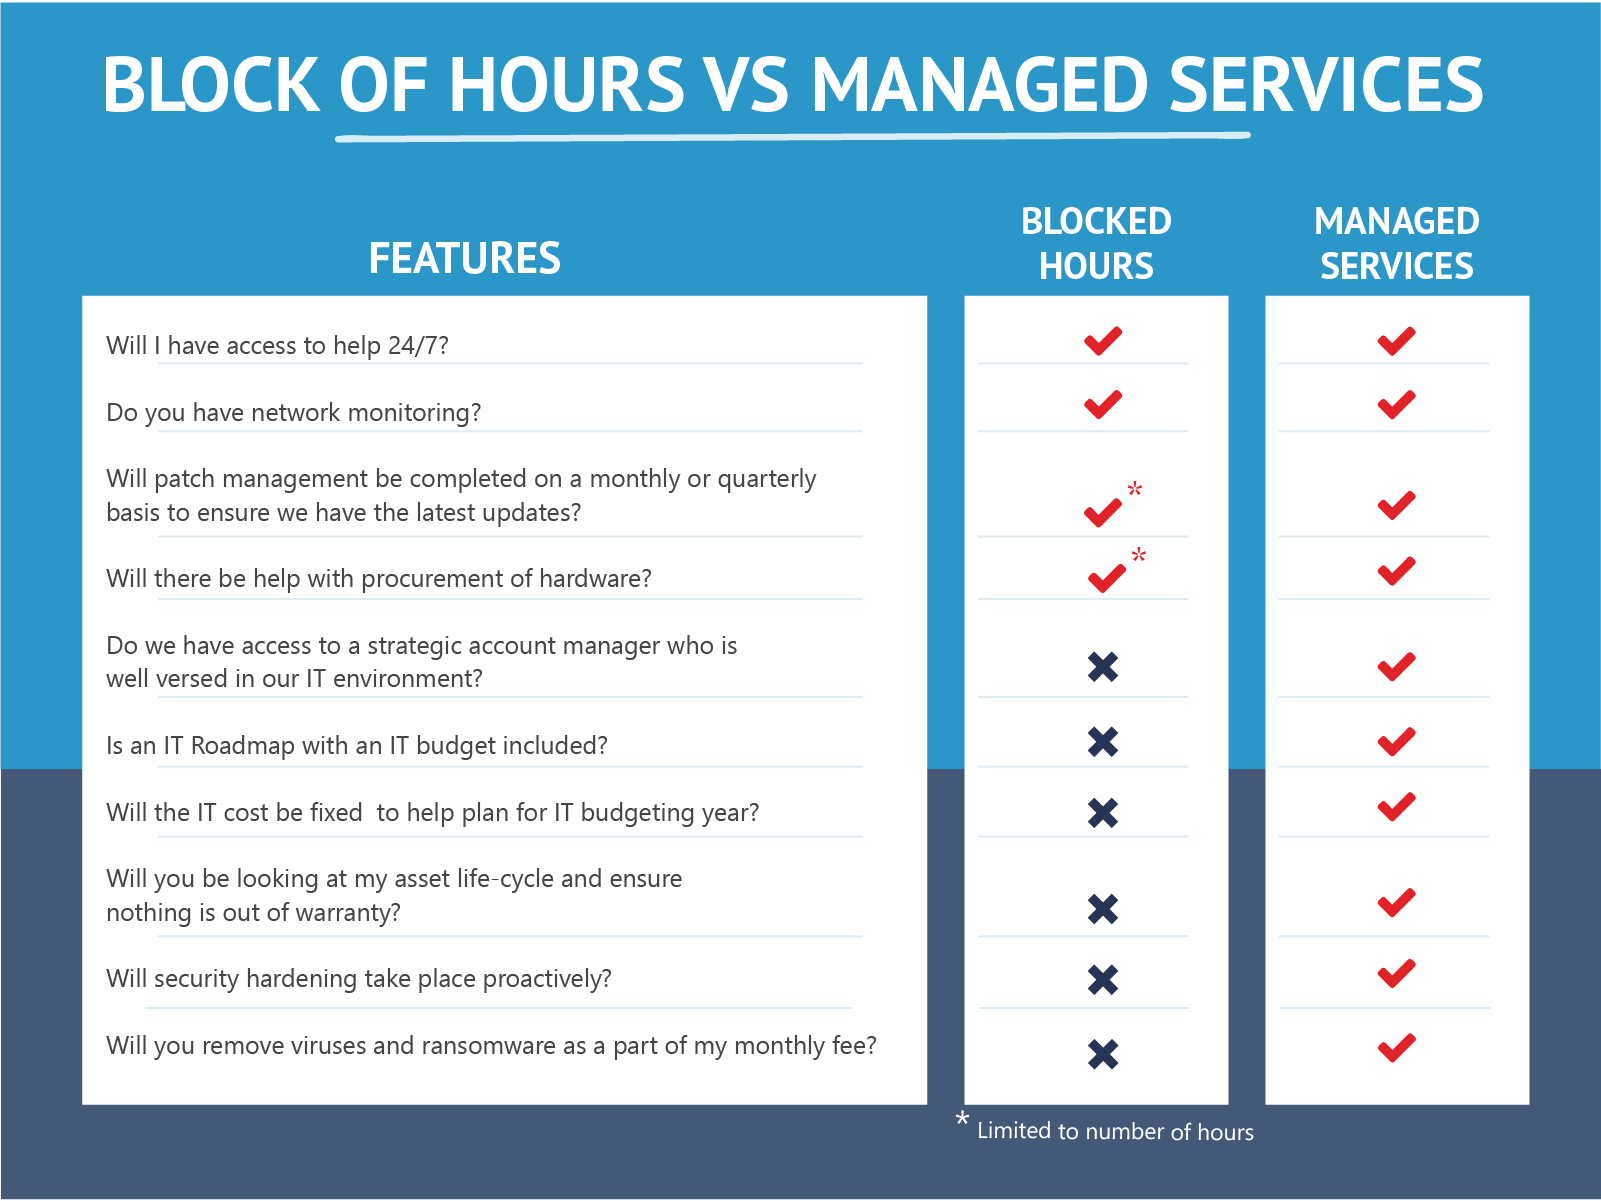 Managed Services vs Block Hours